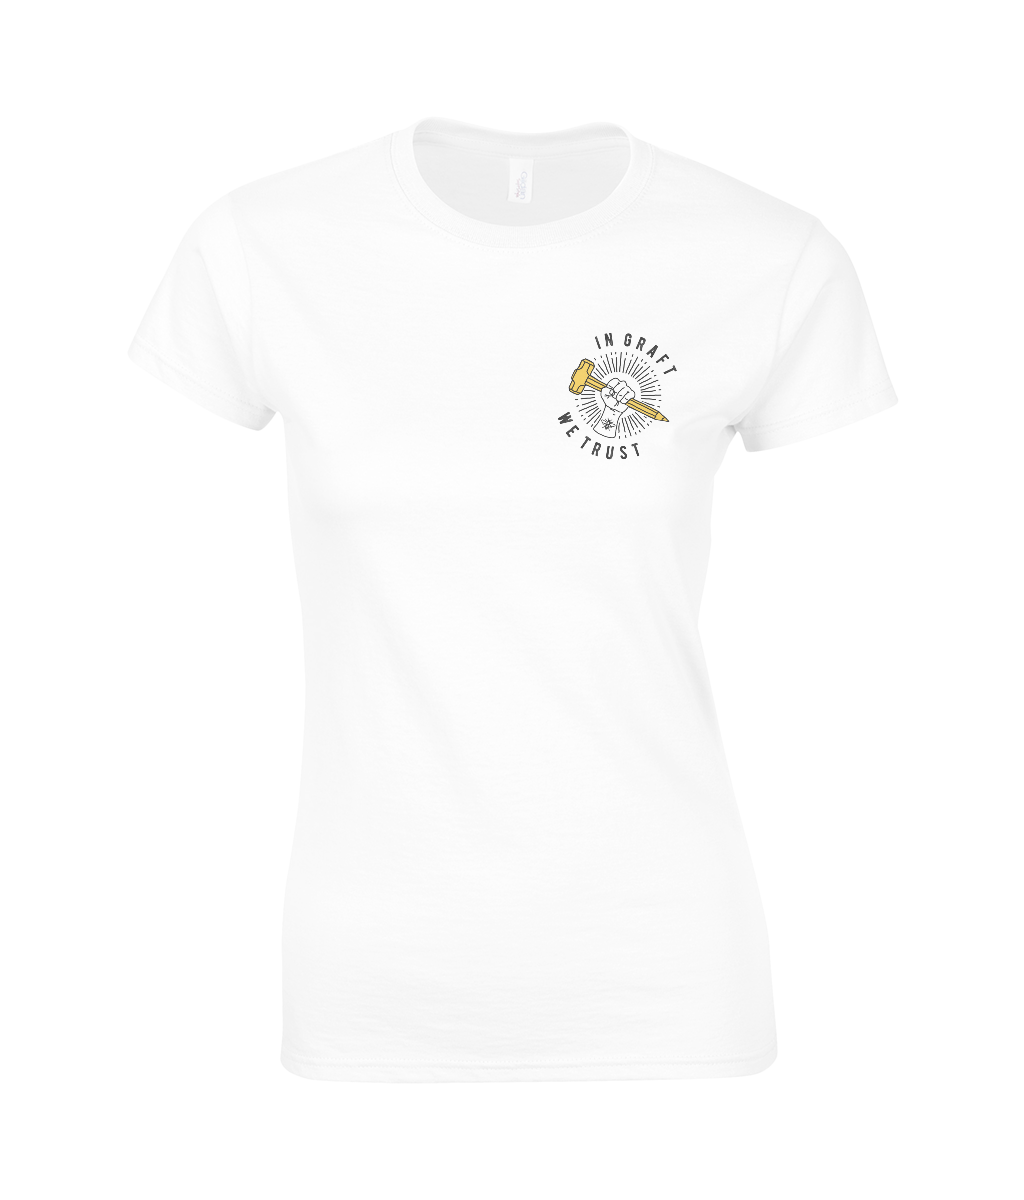 women's cotton t-shirt - small angled graft logo